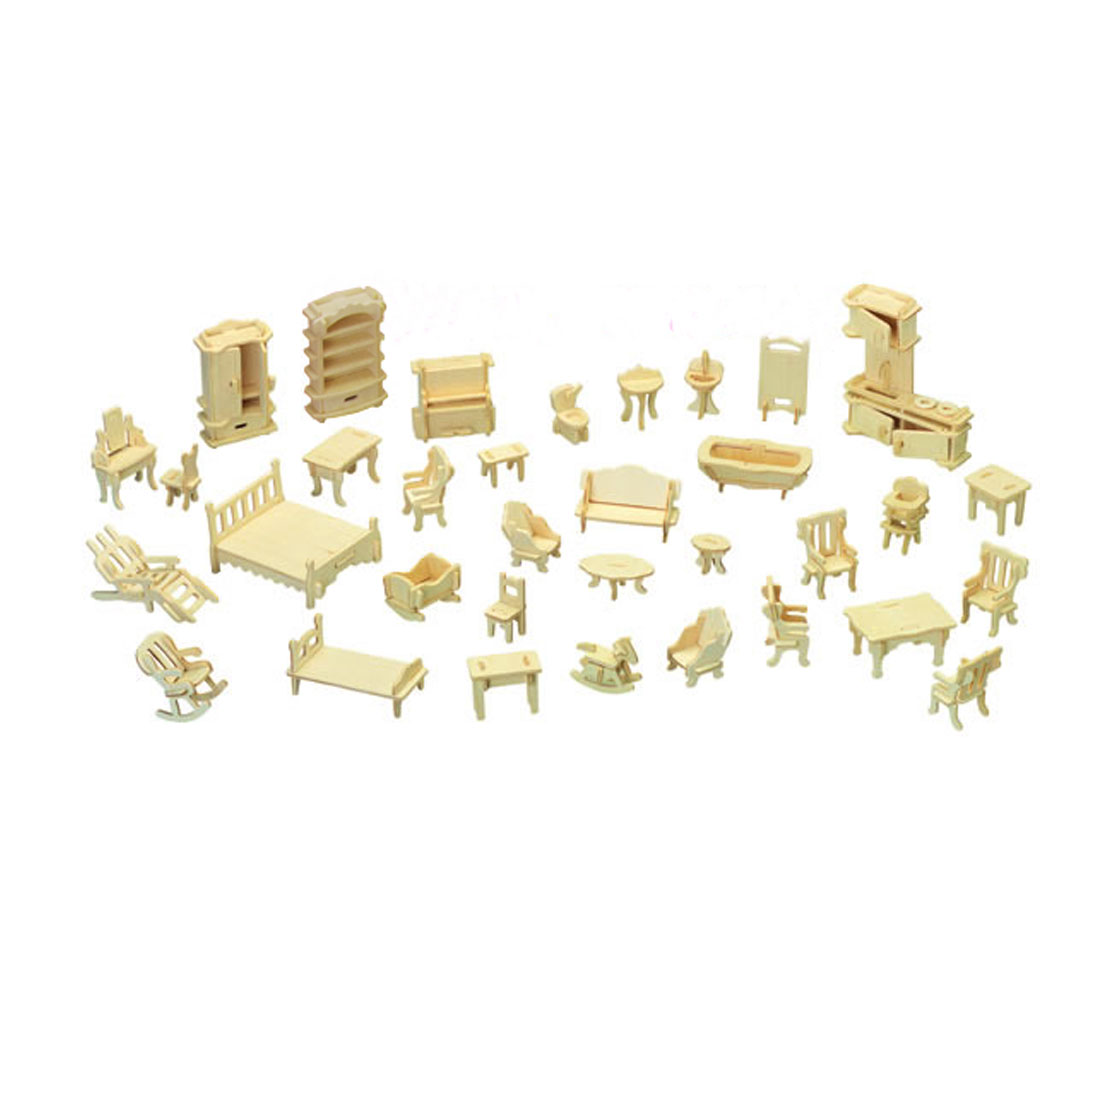 Assemble Furniture Model DIY Puzzle Wooden Construction Kit Gift